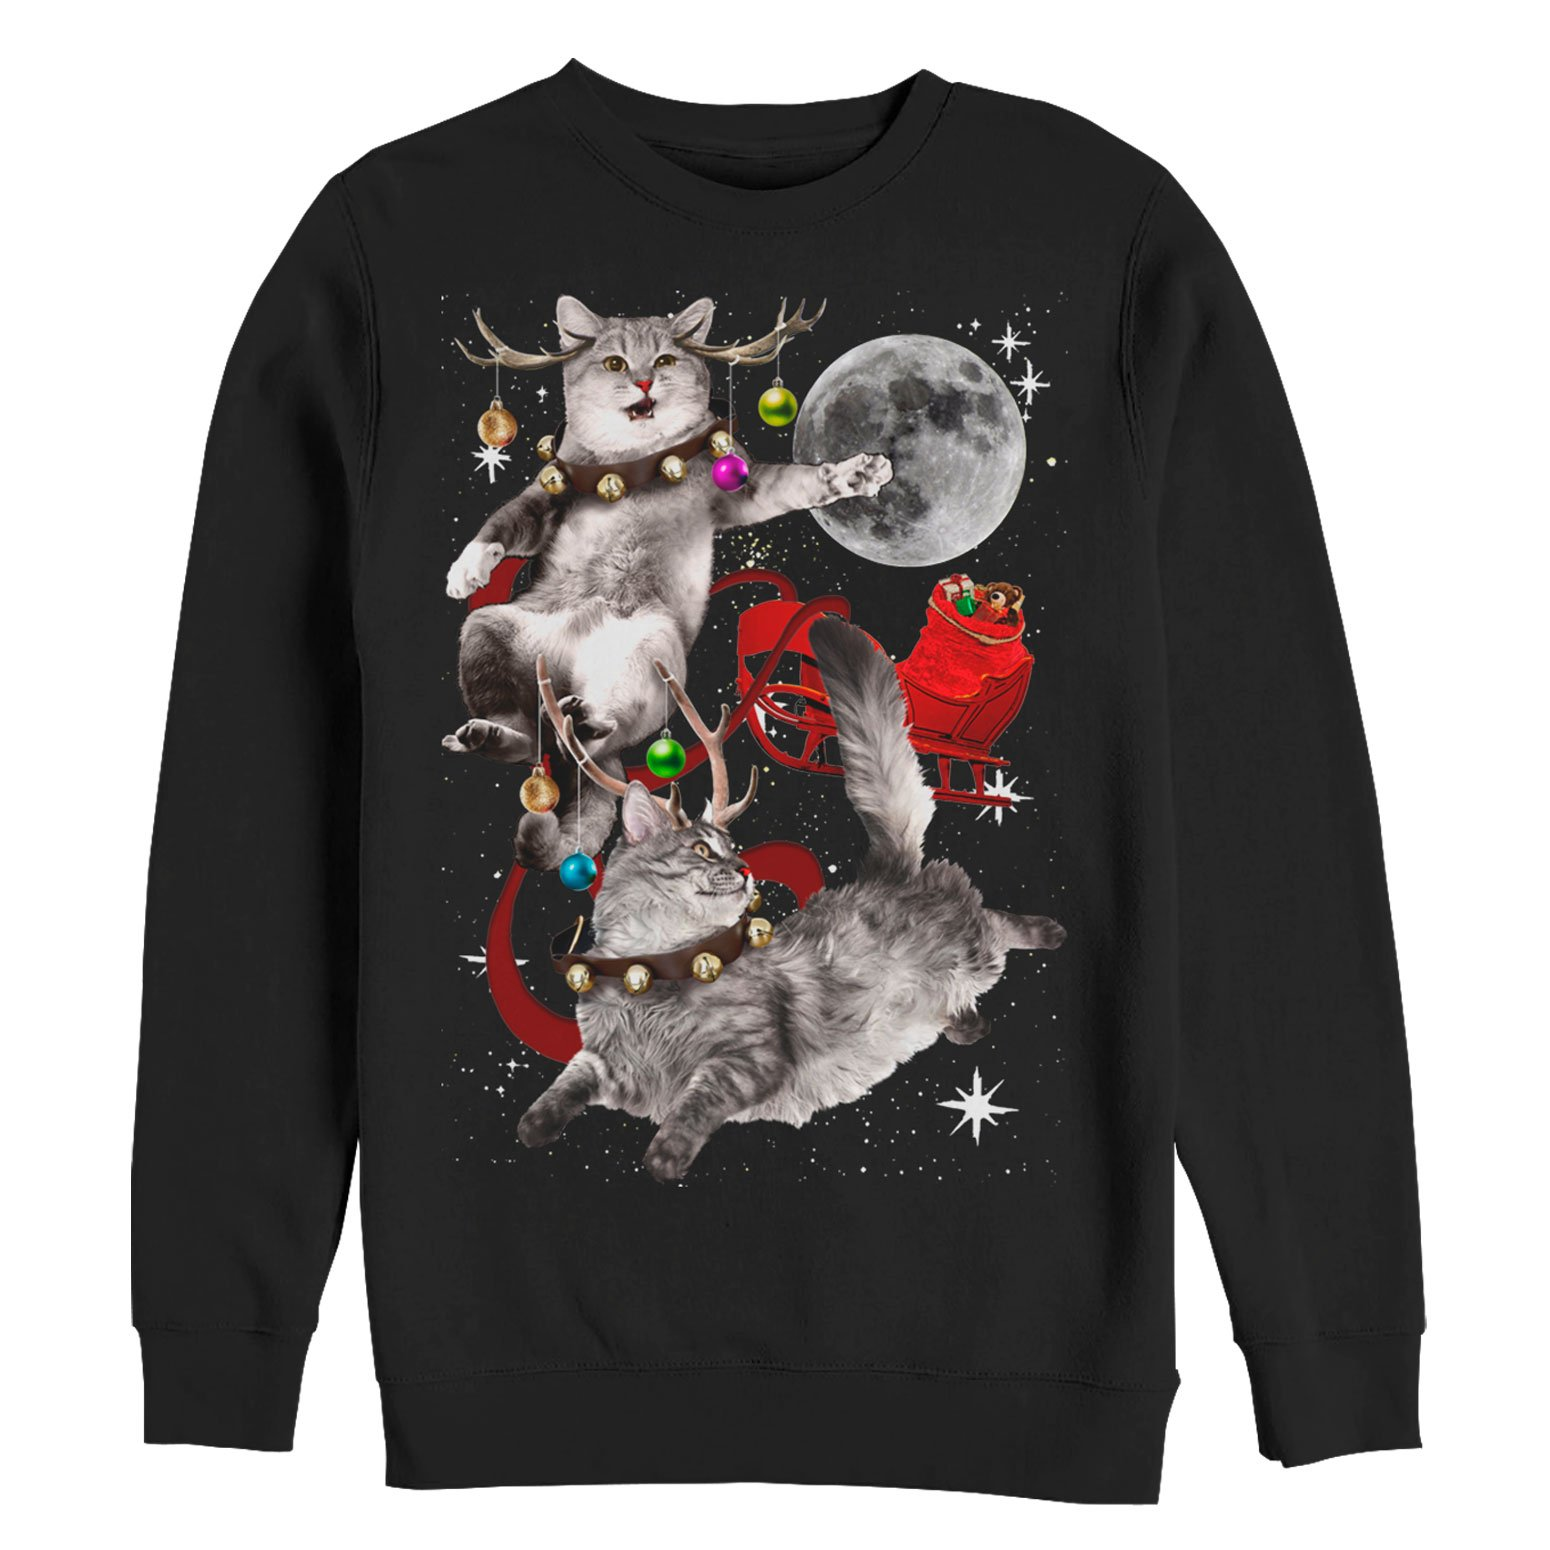 Mens Ugly Christmas Sweater.Lost Gods Men S Ugly Christmas Sweater Cat Sleigh Sweatshirt